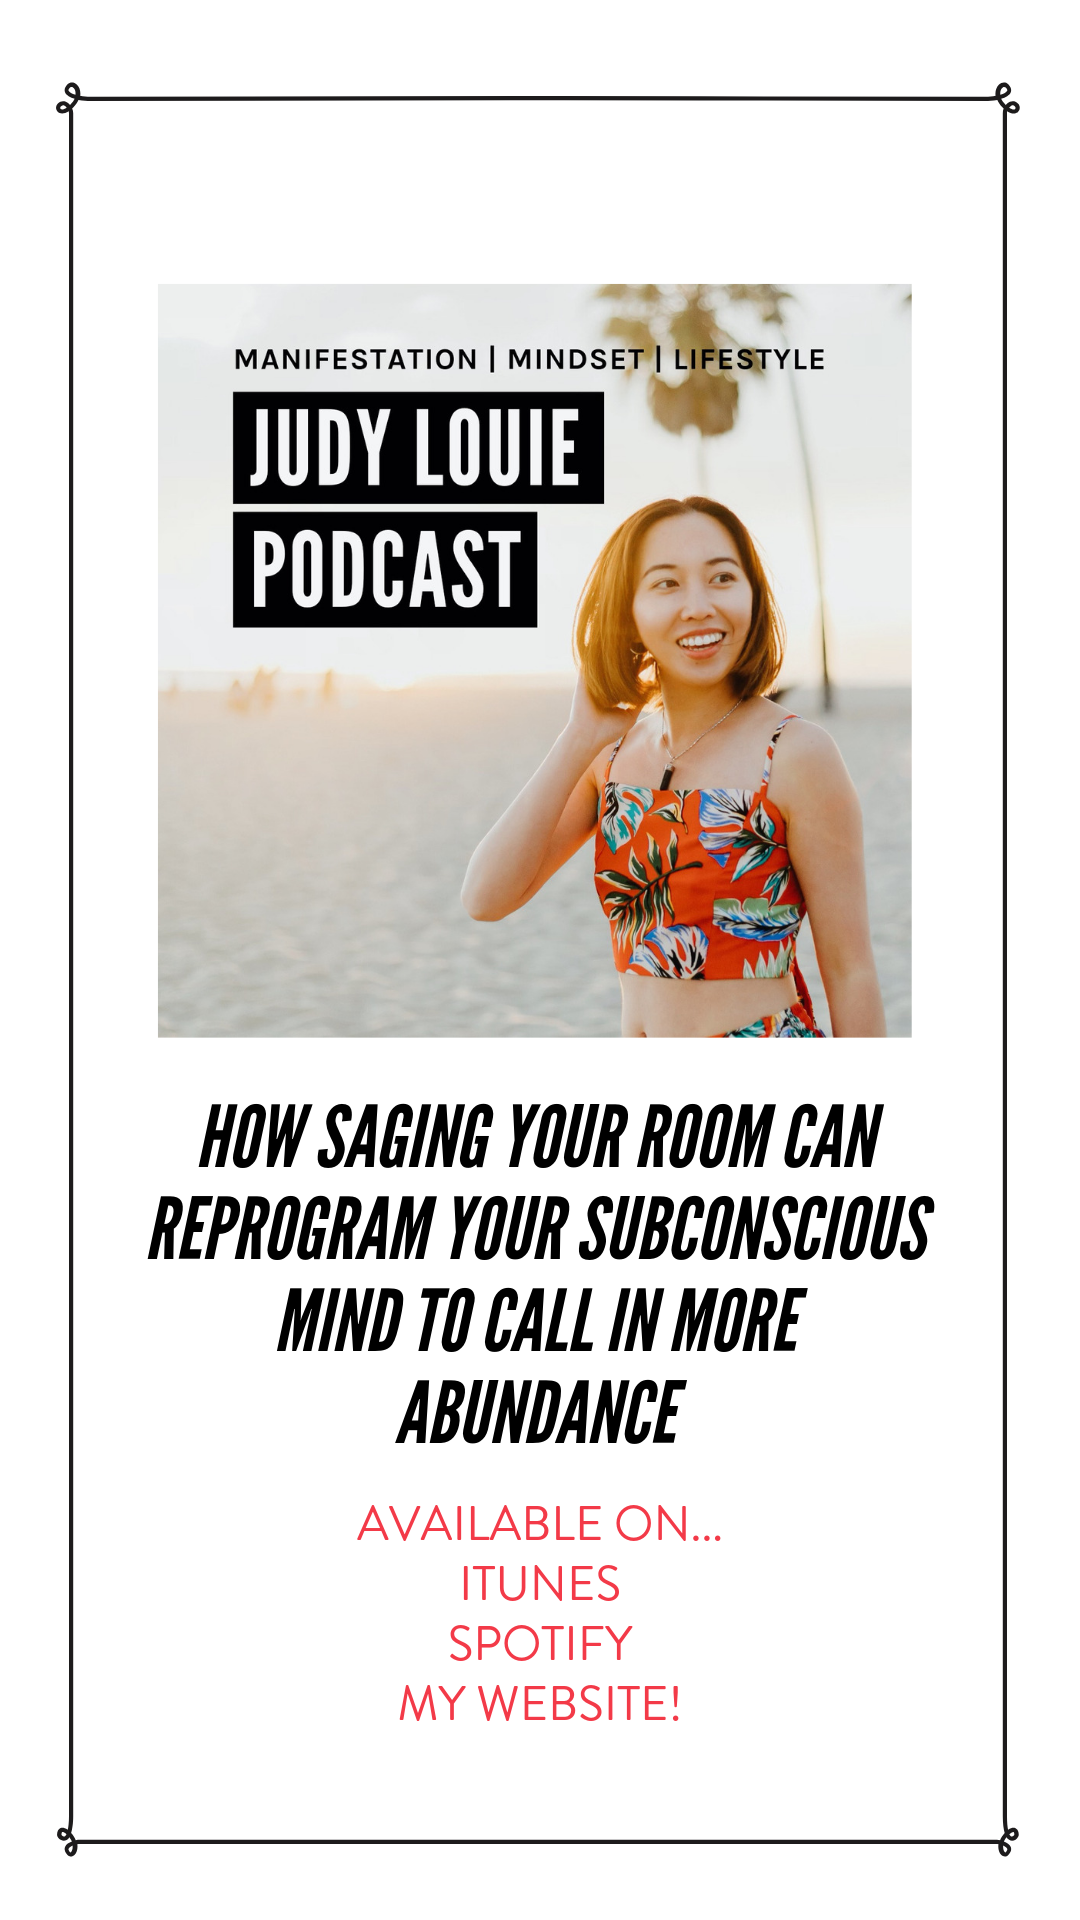 judy louie podcast - saging.png